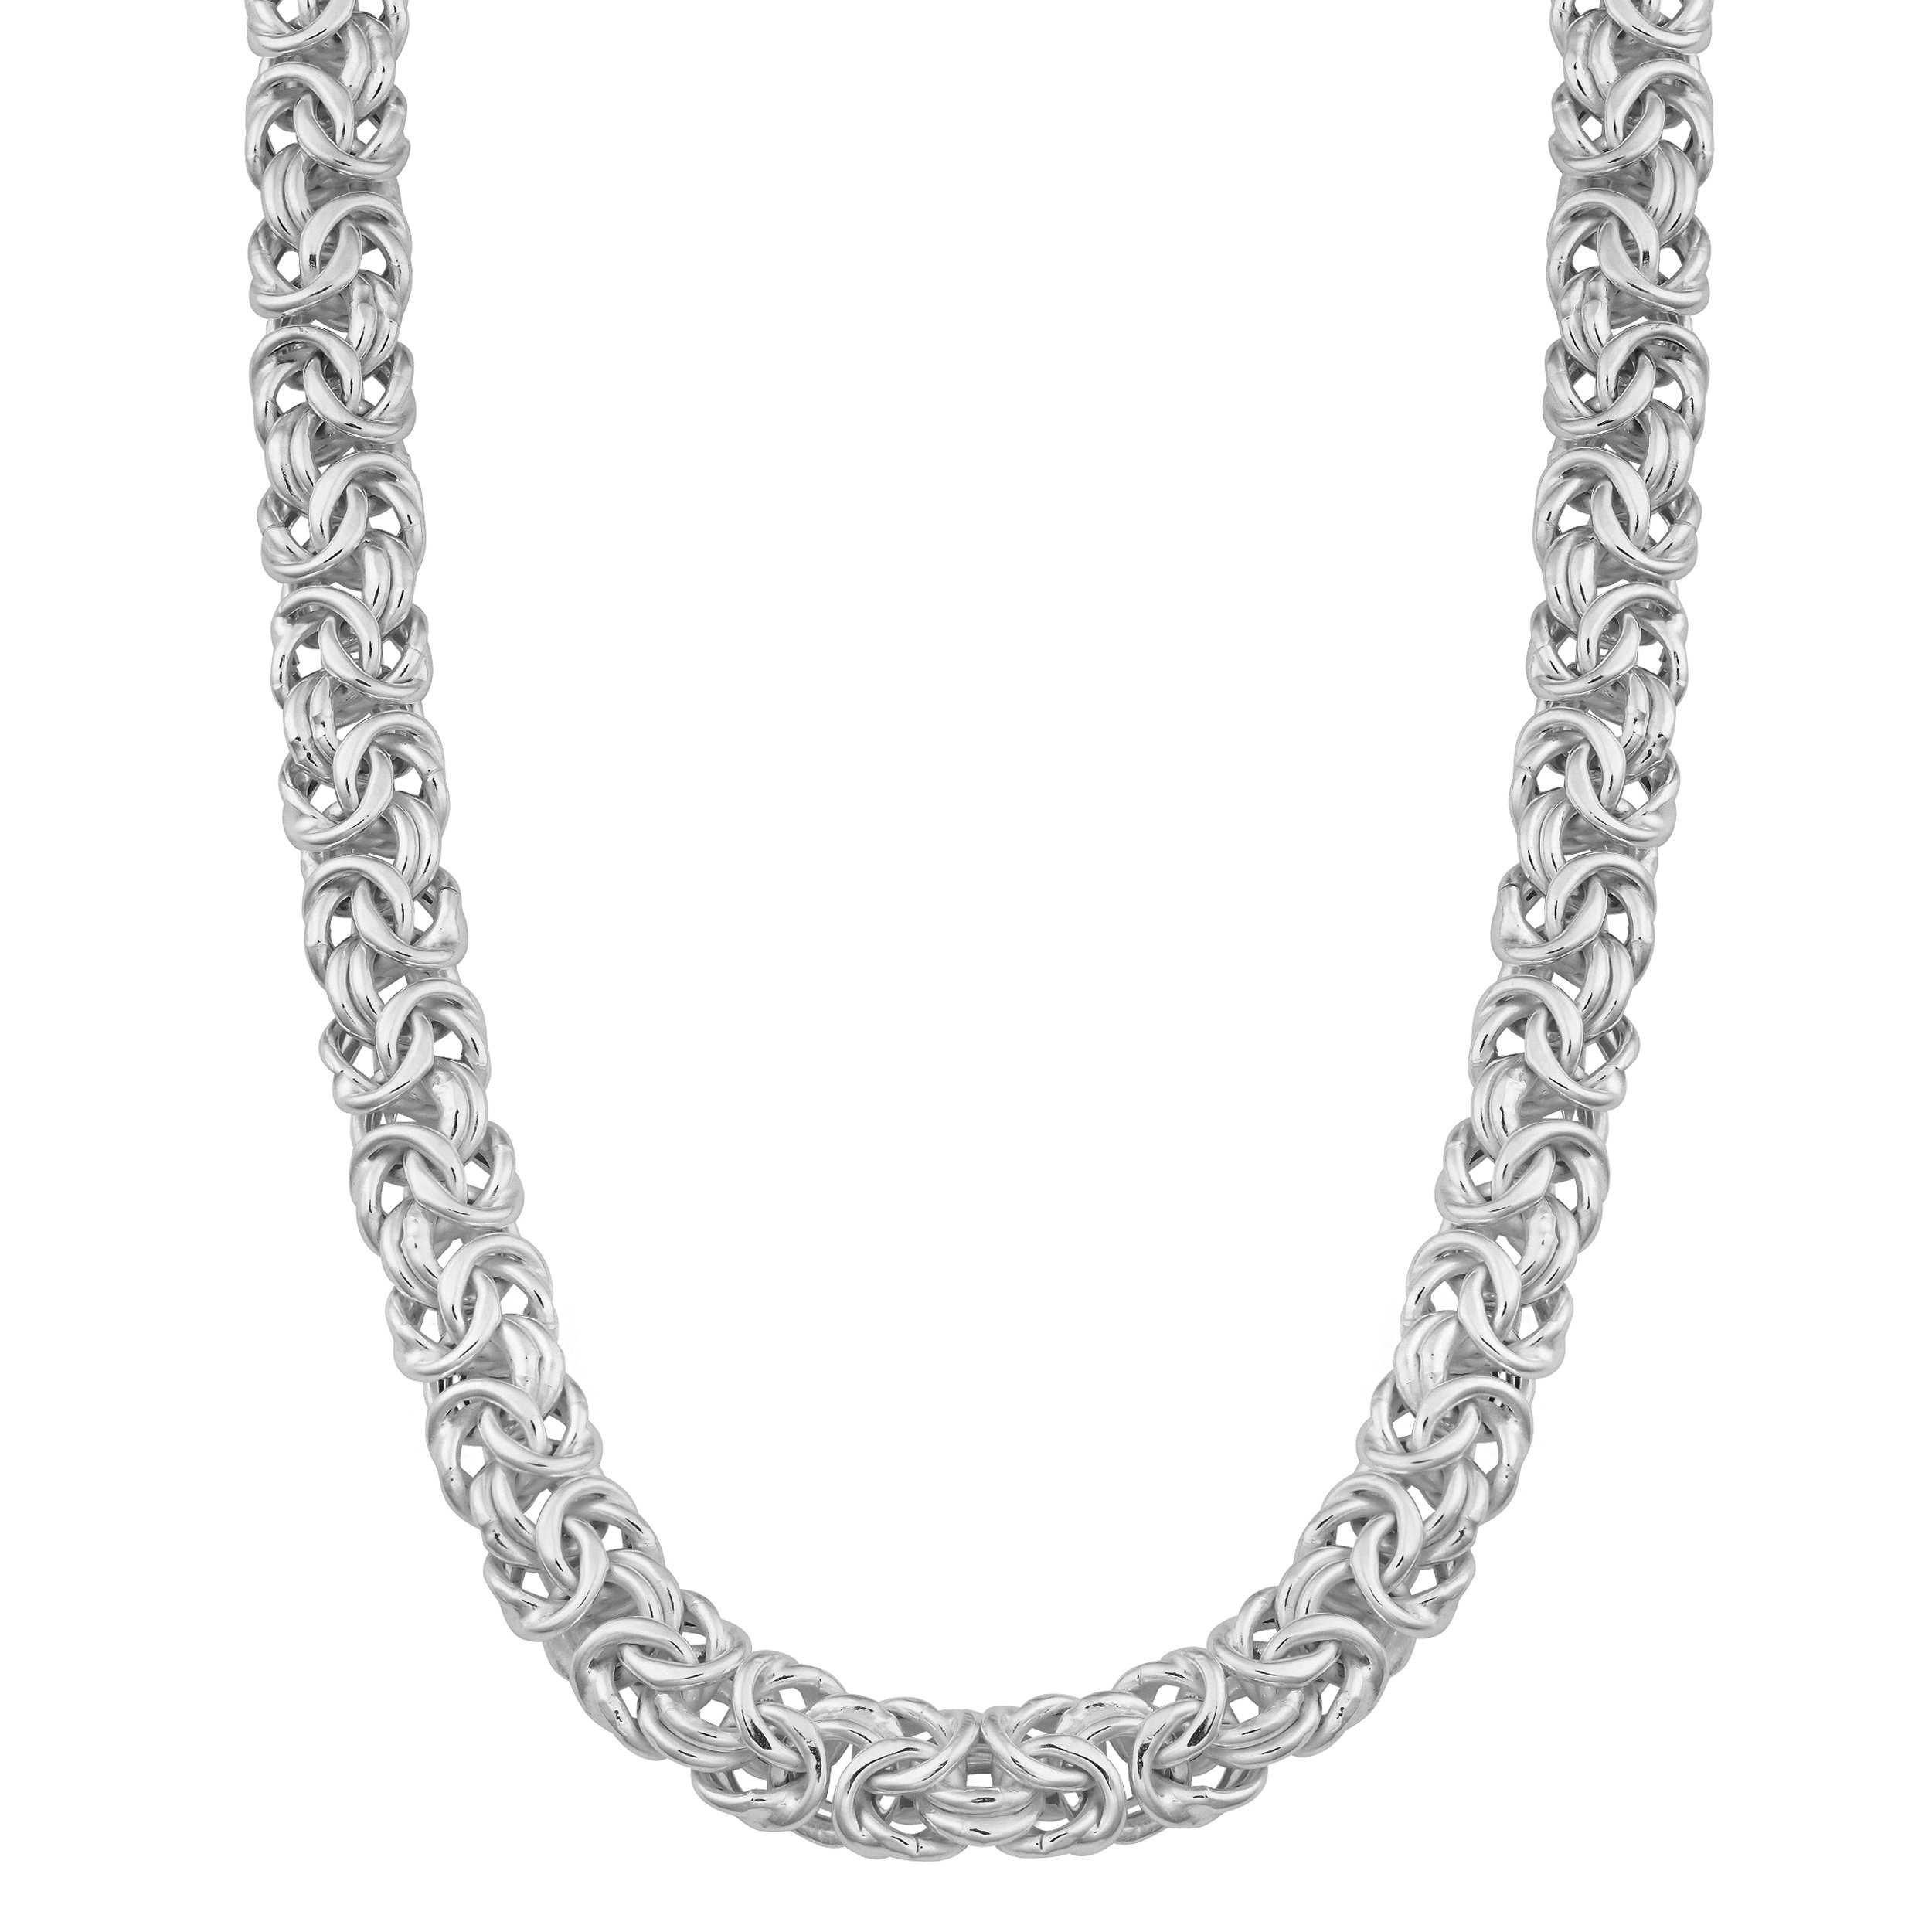 Sterling Silver 6.5mm Byzantine Link Chain Necklace (30 inch)